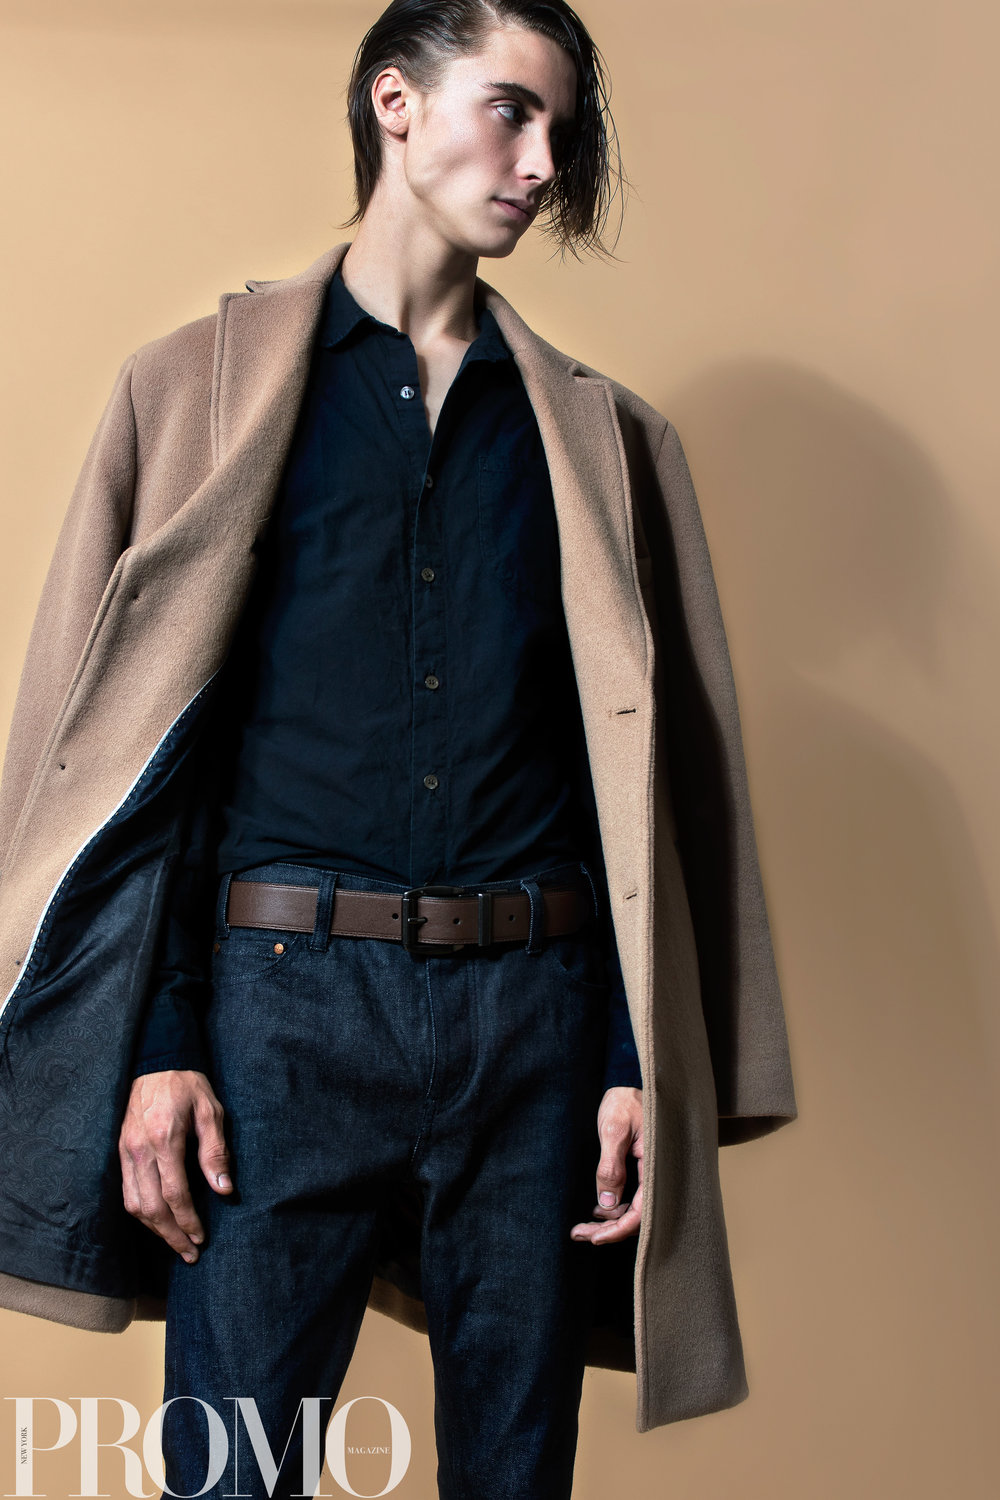 Navy button Up Calvin Klein Tan Coat Levi's (reversible) Belt Han Kjobenhaven Jeans